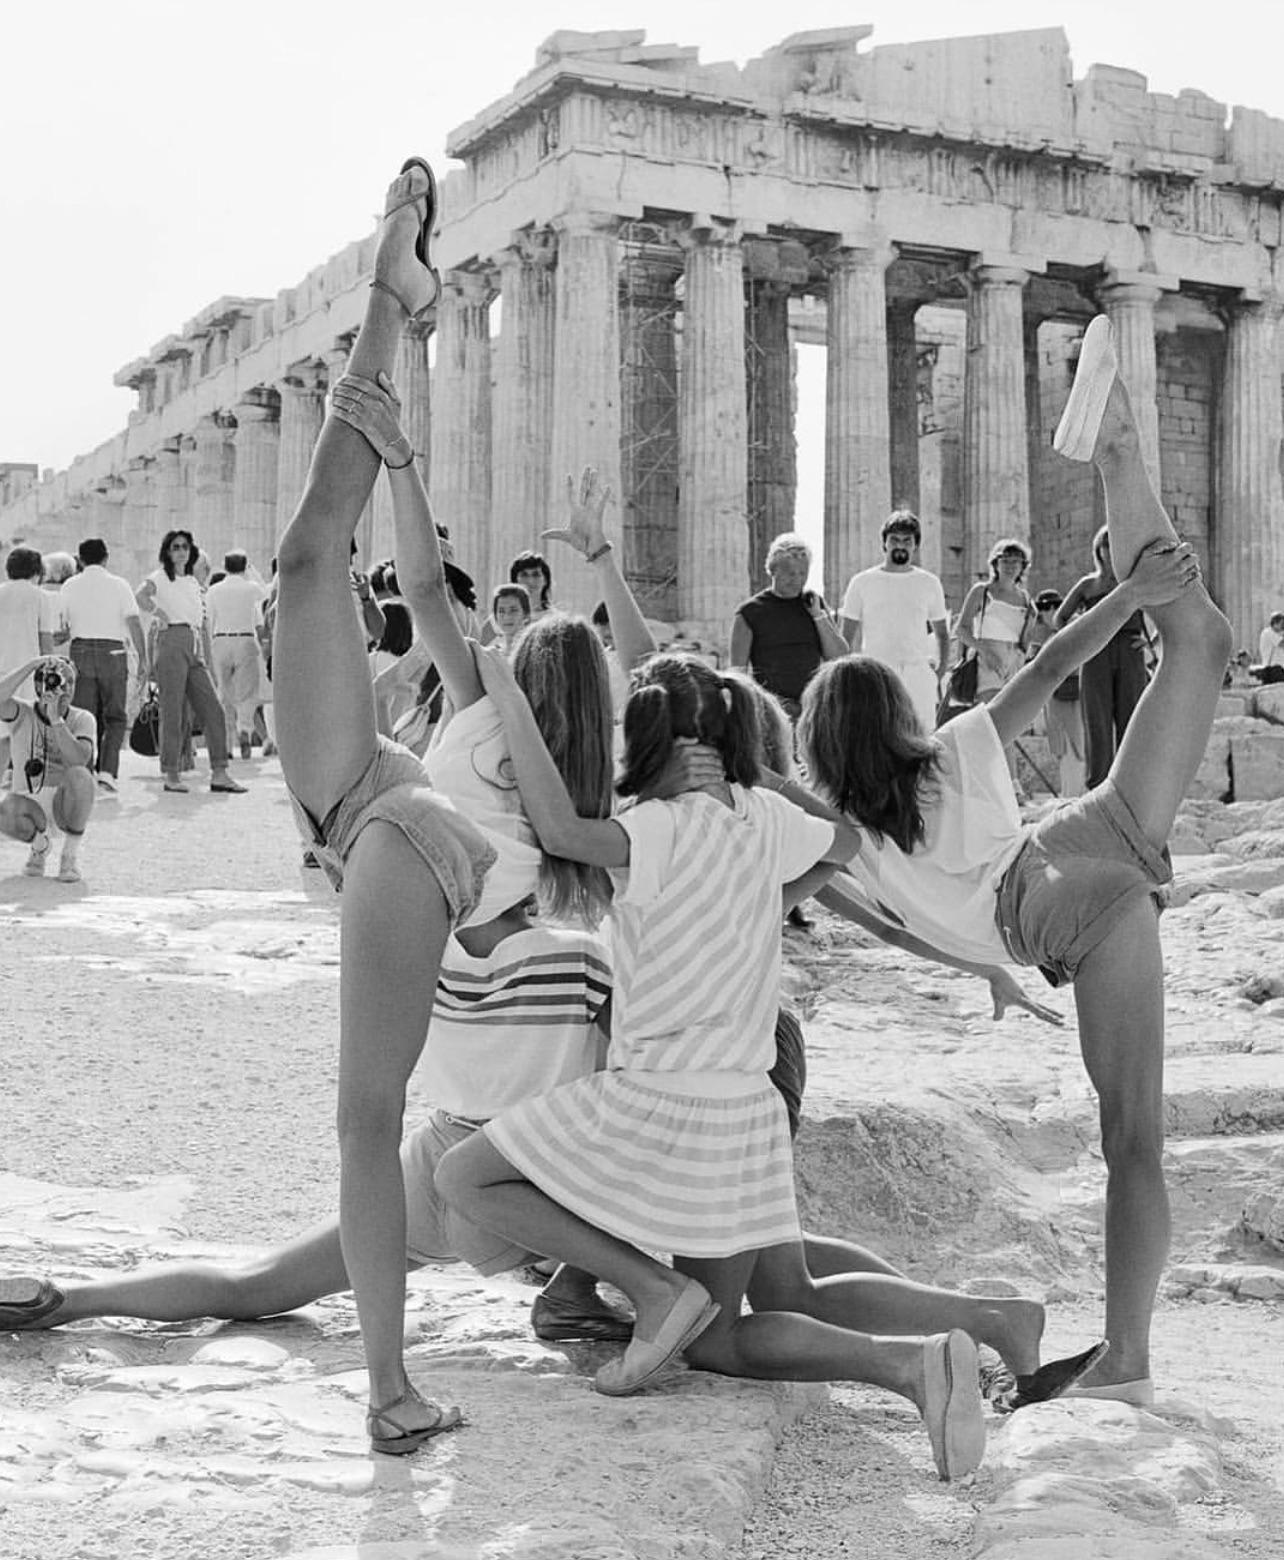 Tourists in Greece, 1983